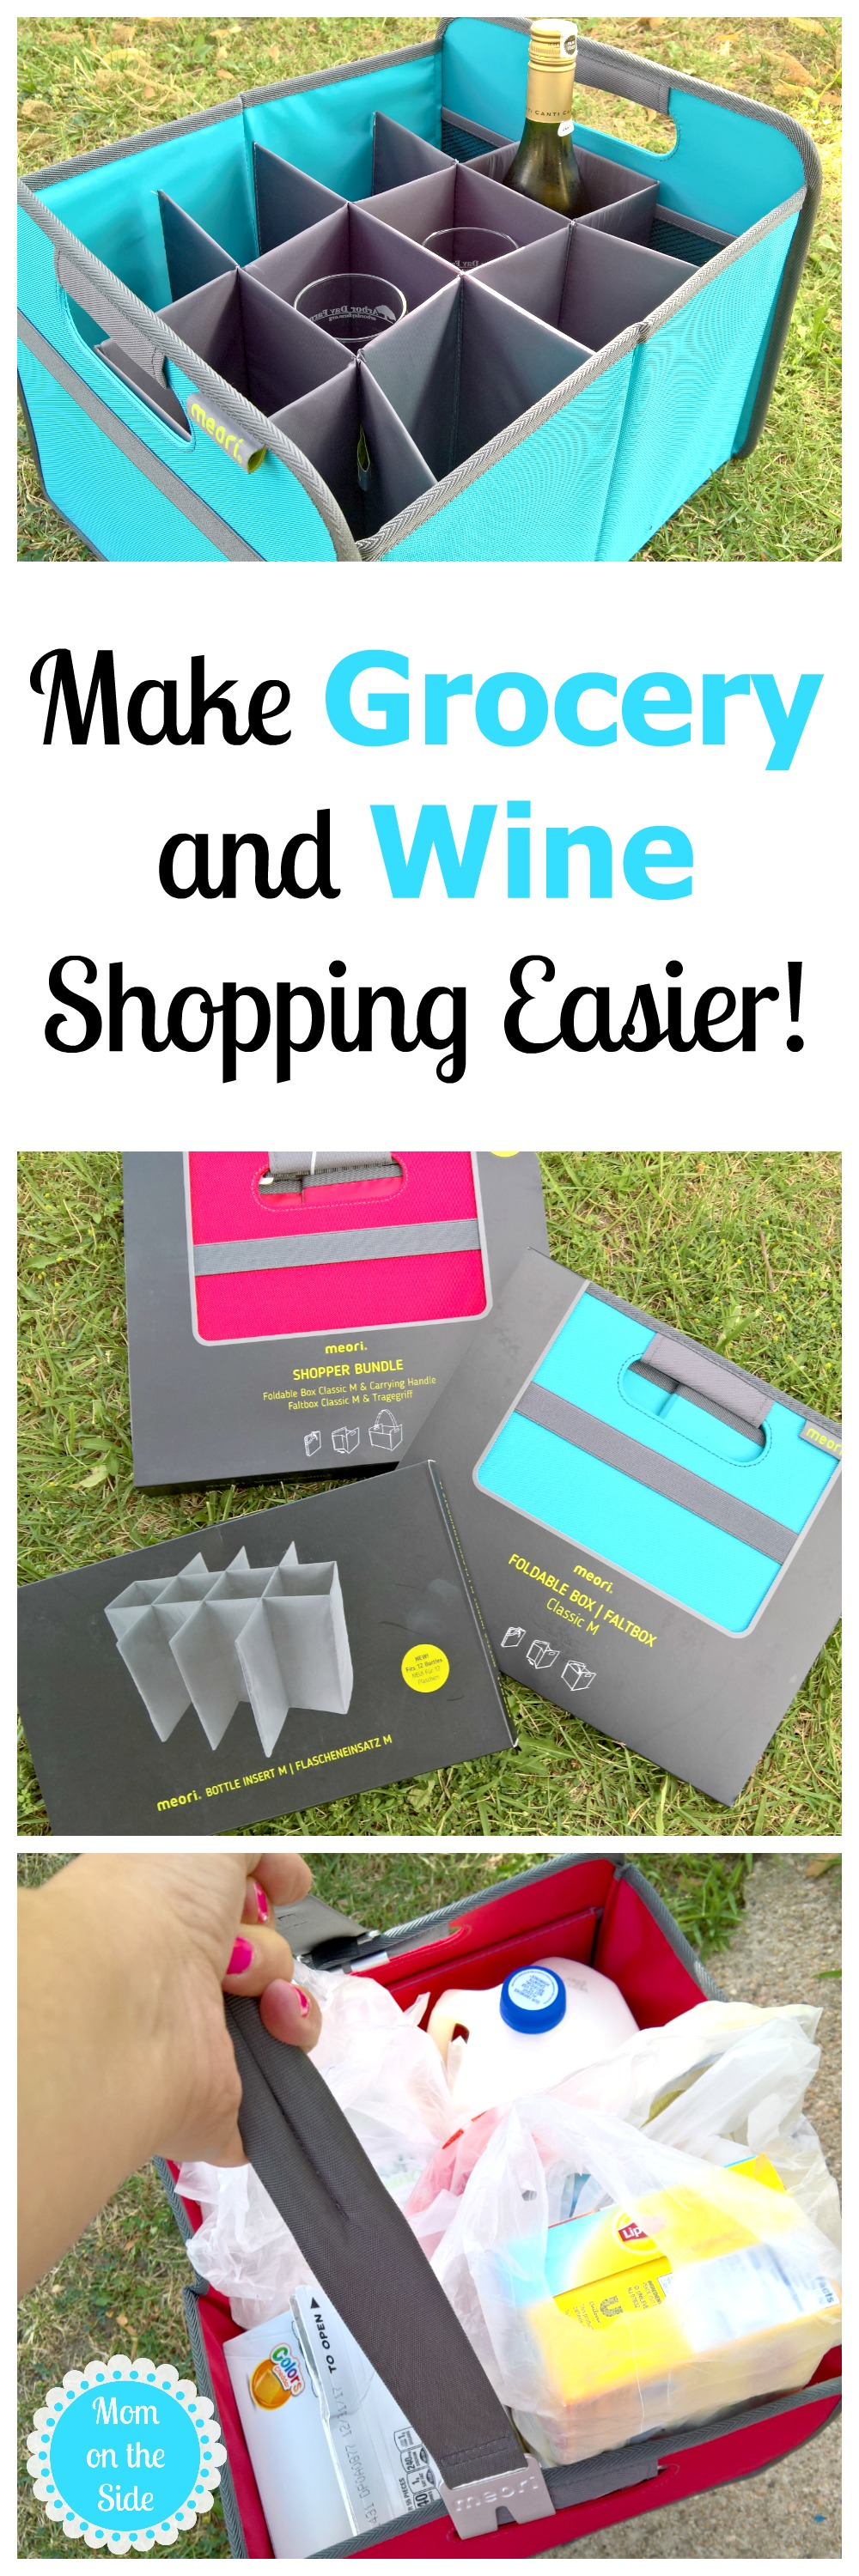 Make shopping easier with meorio shopper bundle and wine carrier